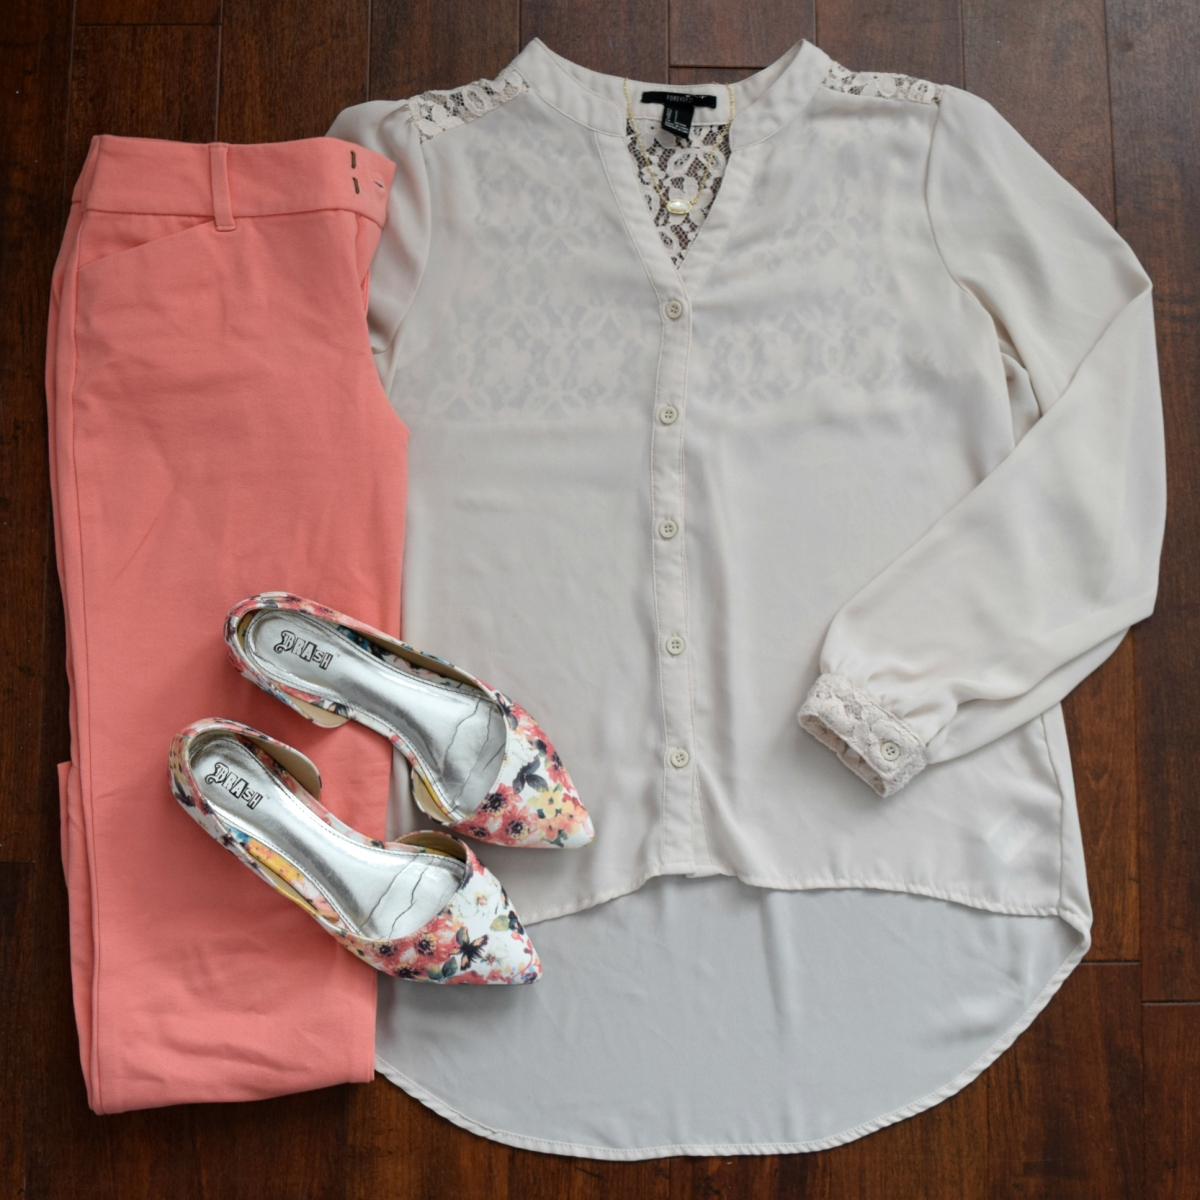 pastel pants, a silky ivory blouse, and floral flats